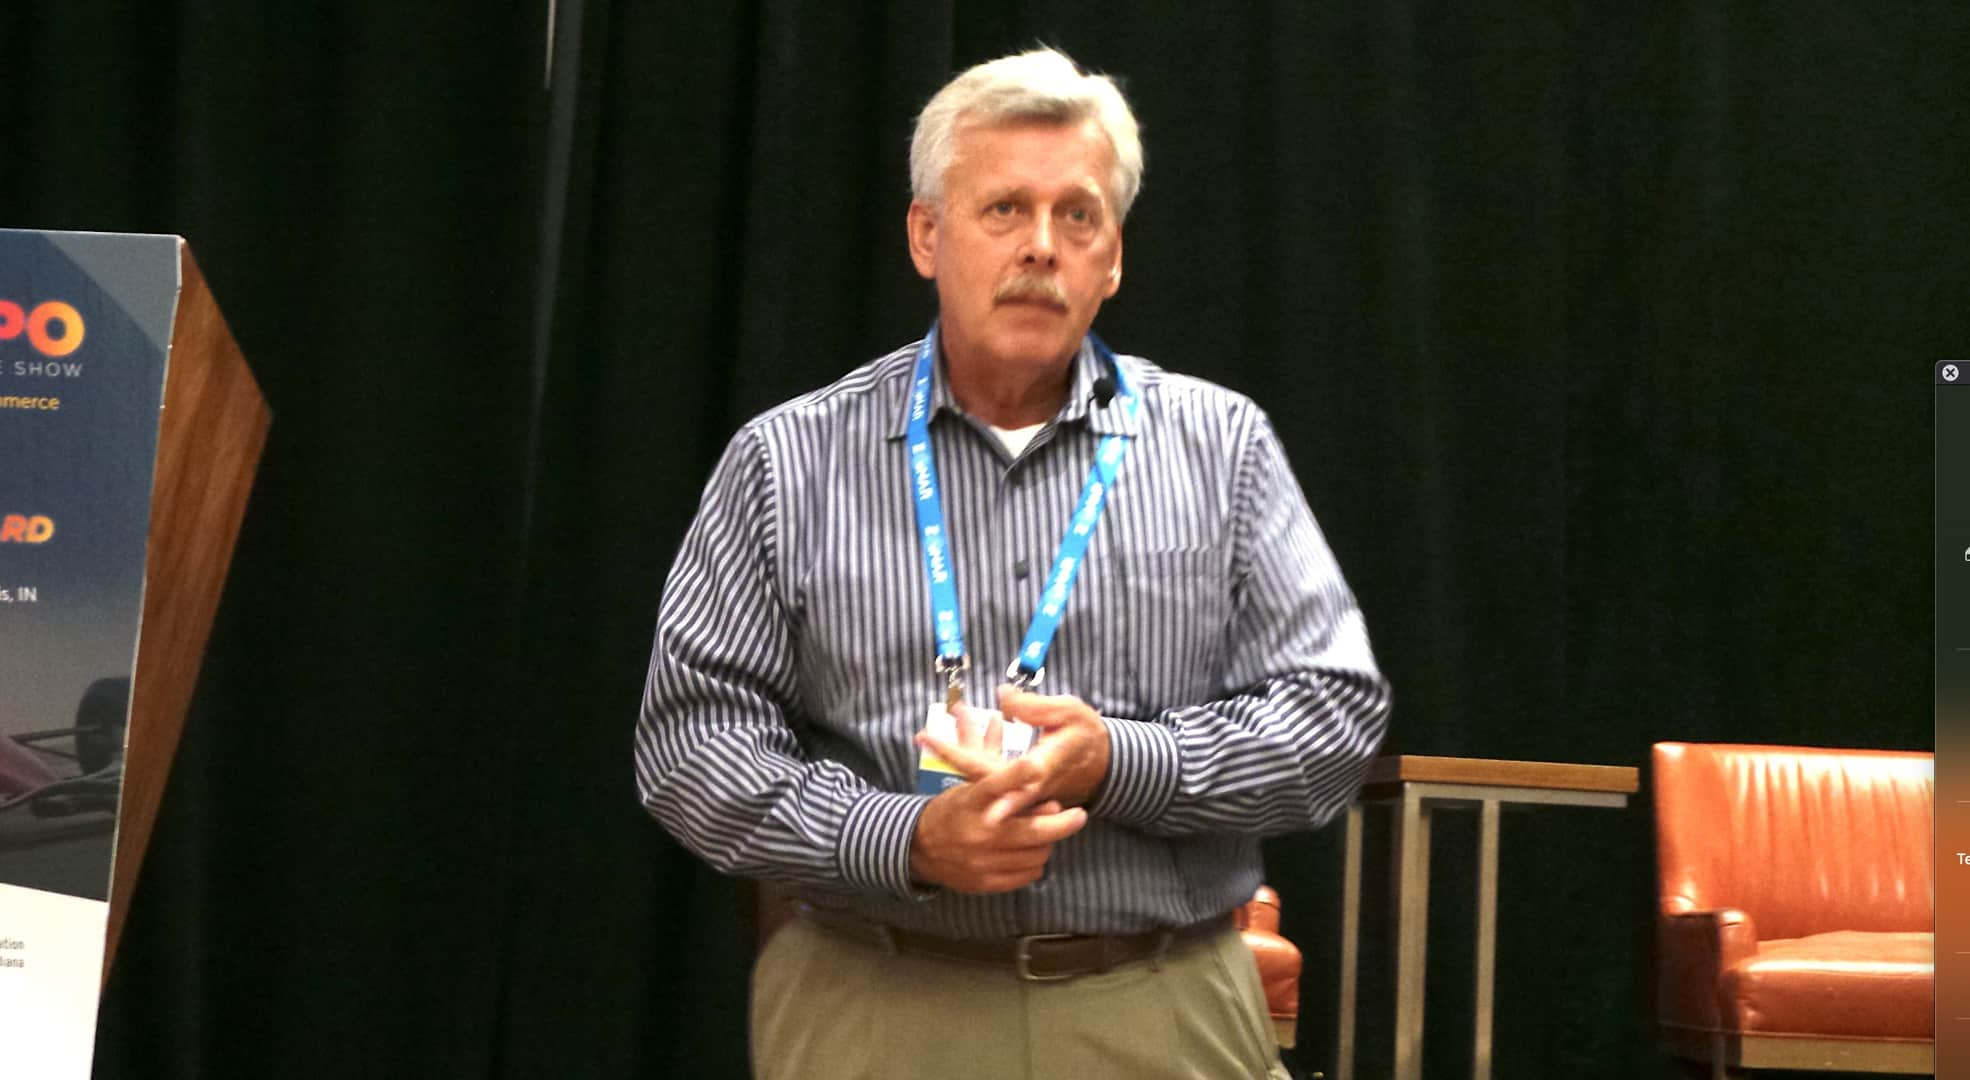 Industry expert Marshall Casey enumerated the strong points in his presentation. (Photo by David George.)